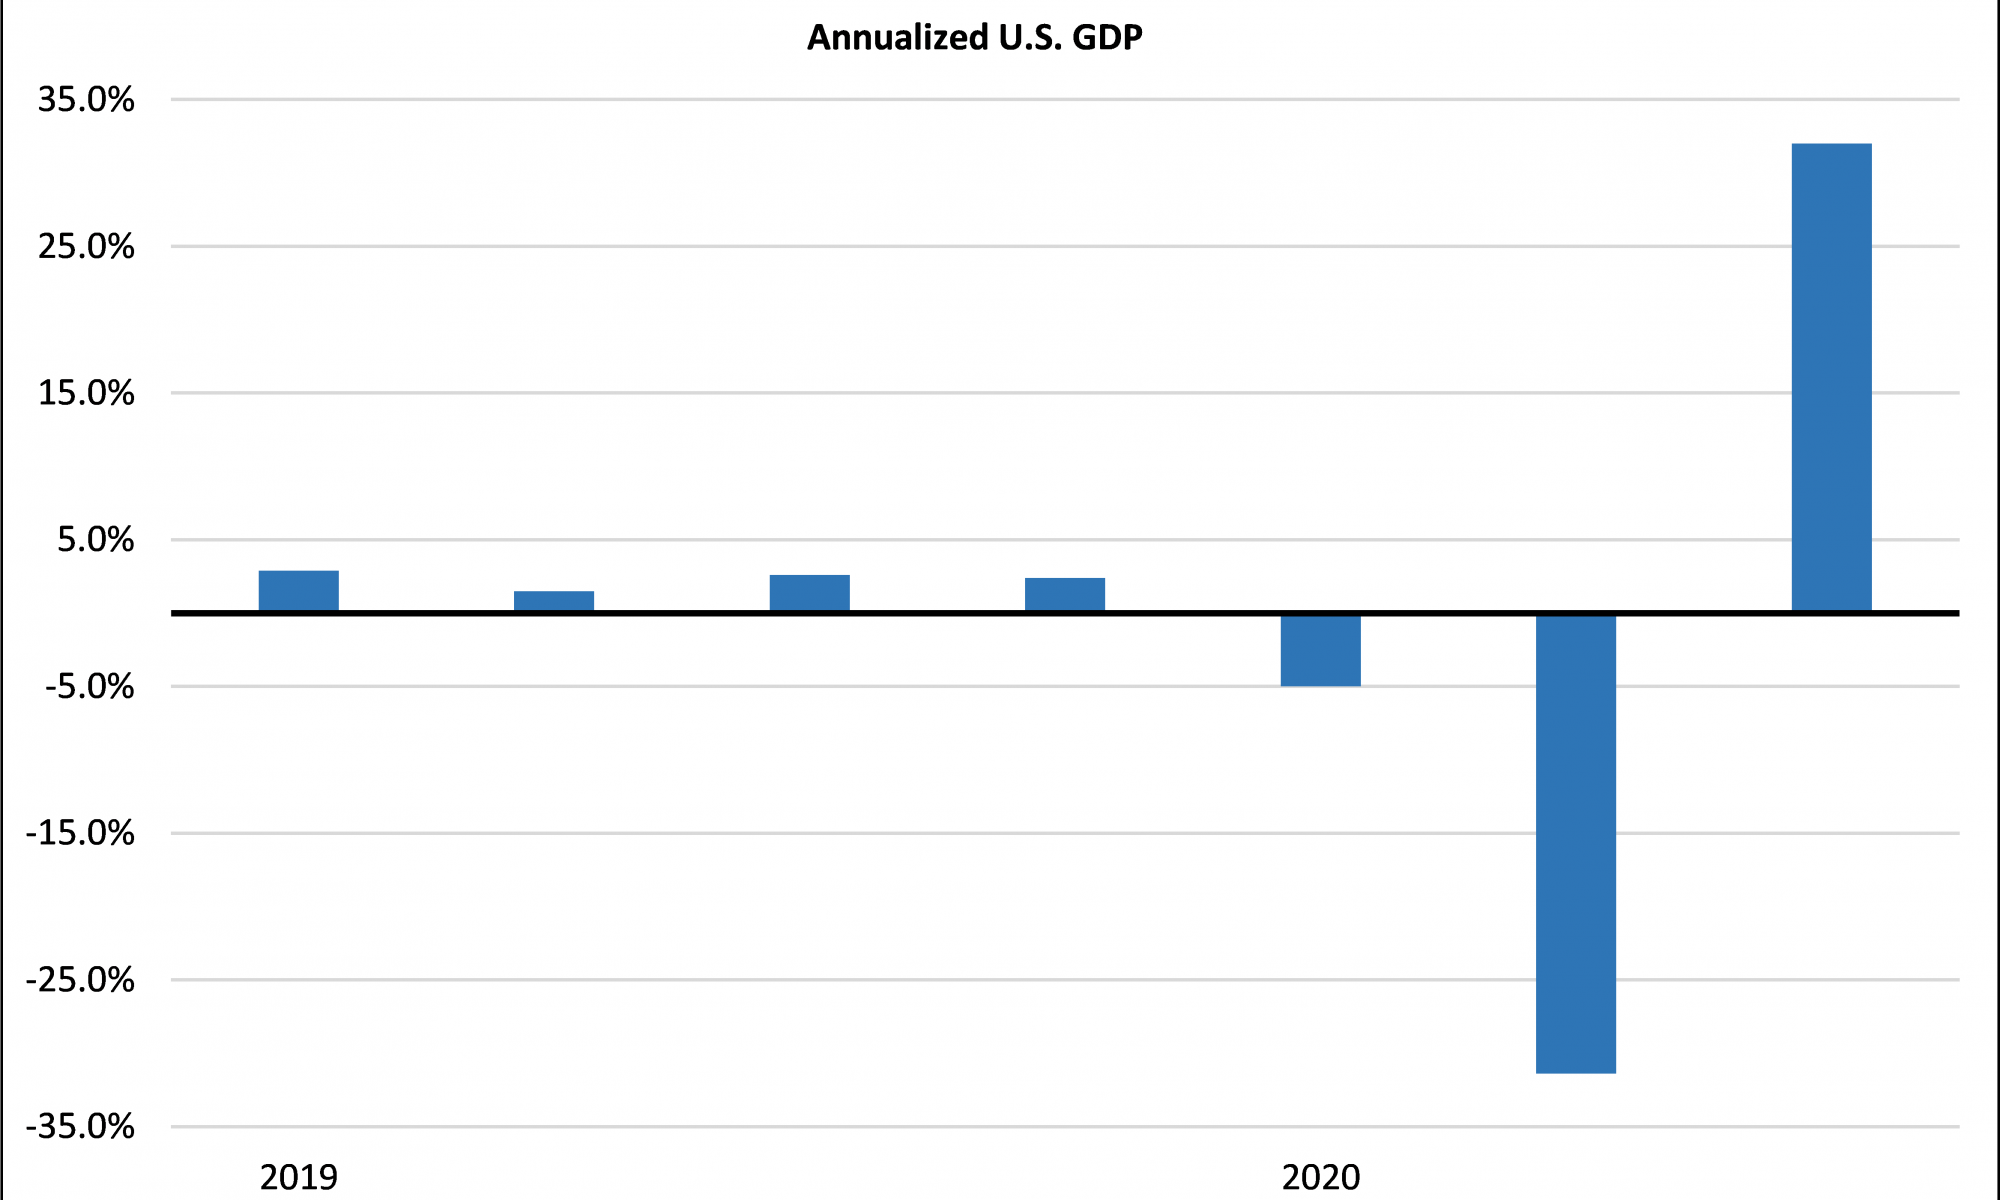 Annualized U.S. GDP